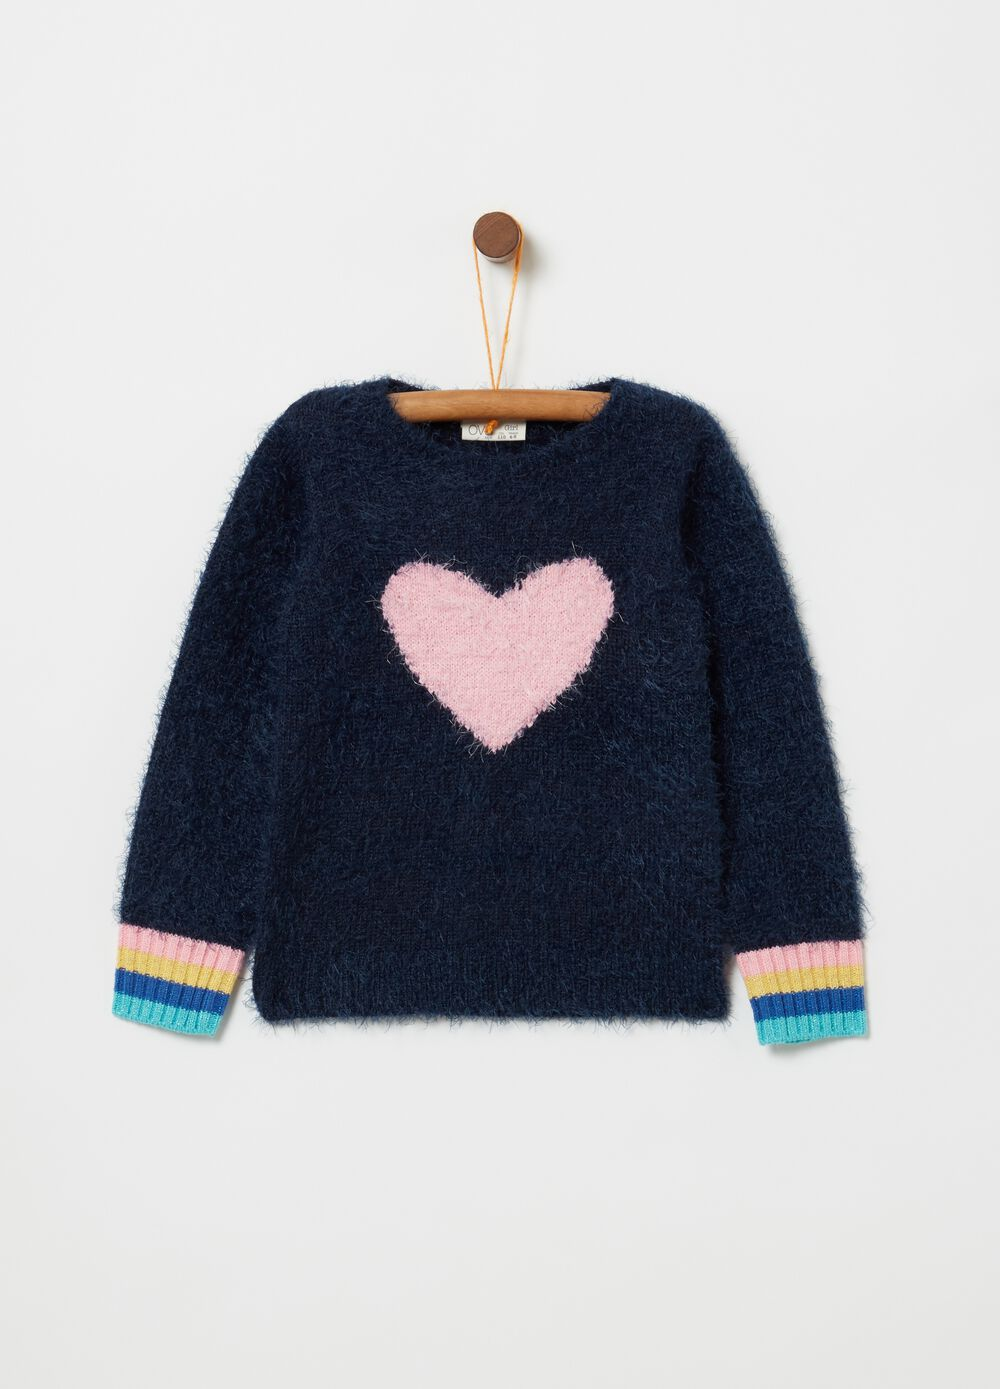 Knitted lurex top and heart embroidery